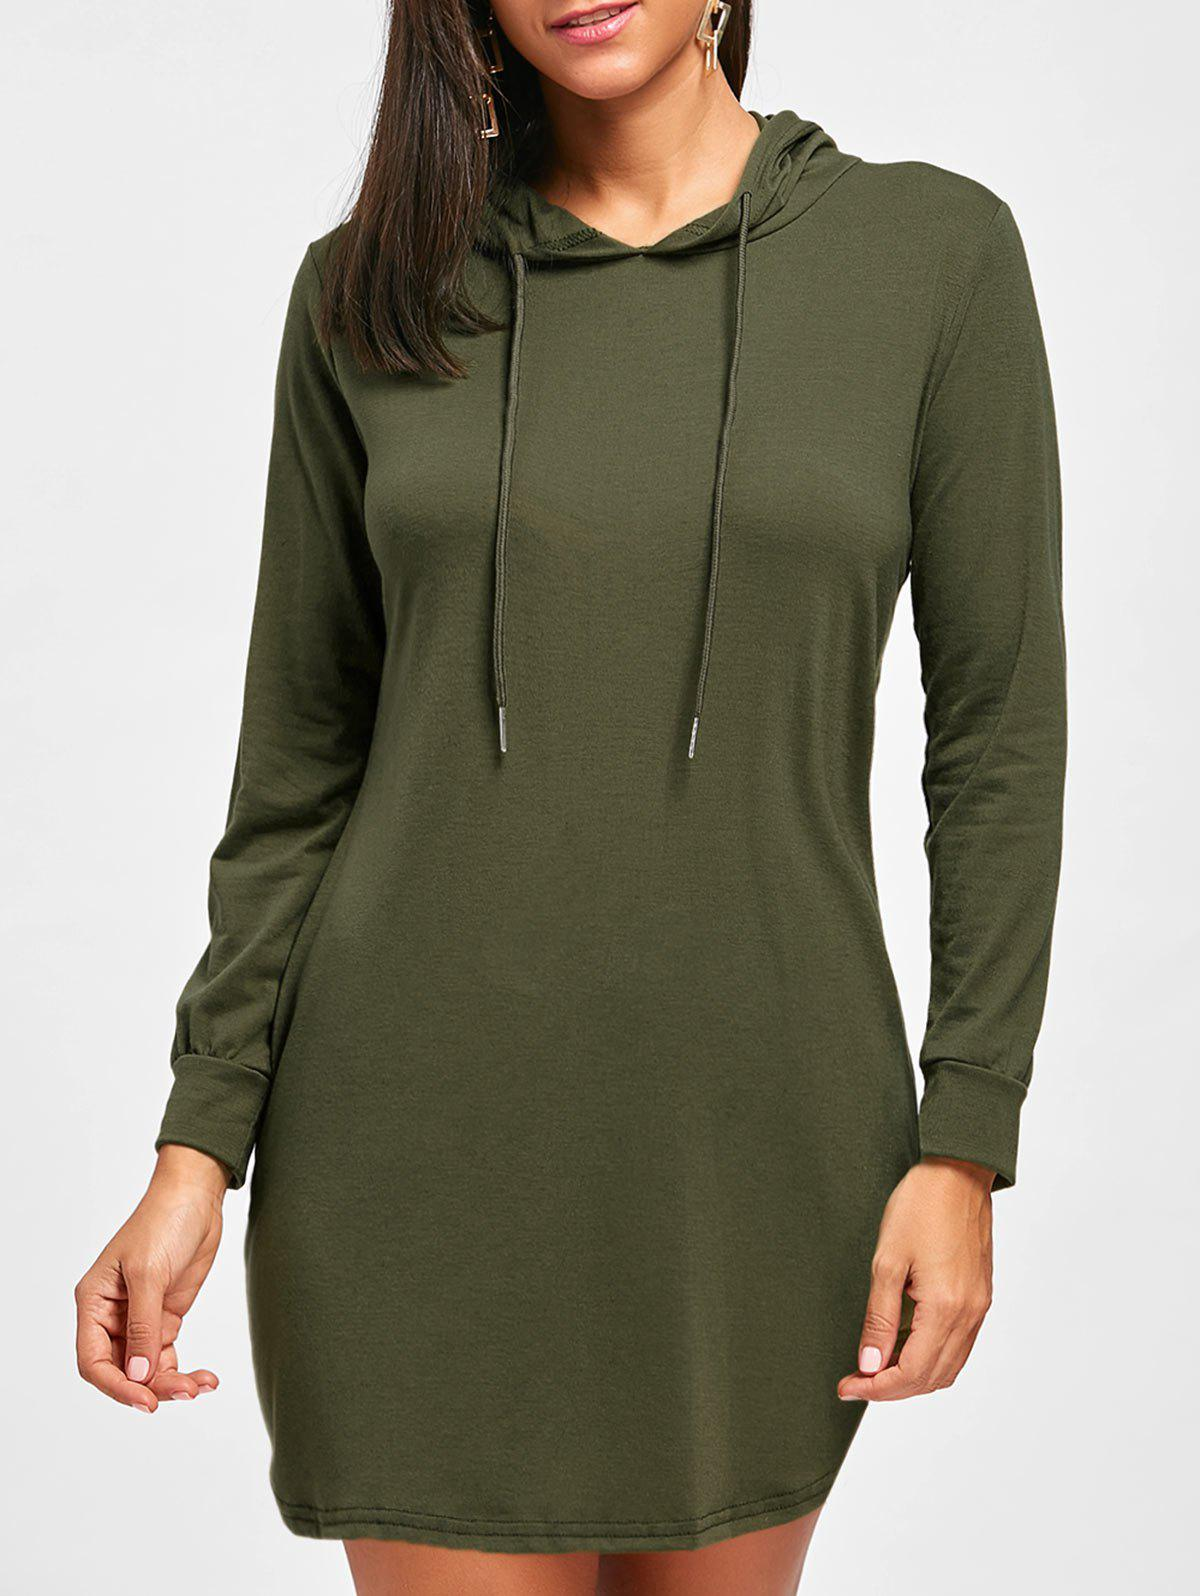 Hot Draswtring Long Sleeve Hooded Dress